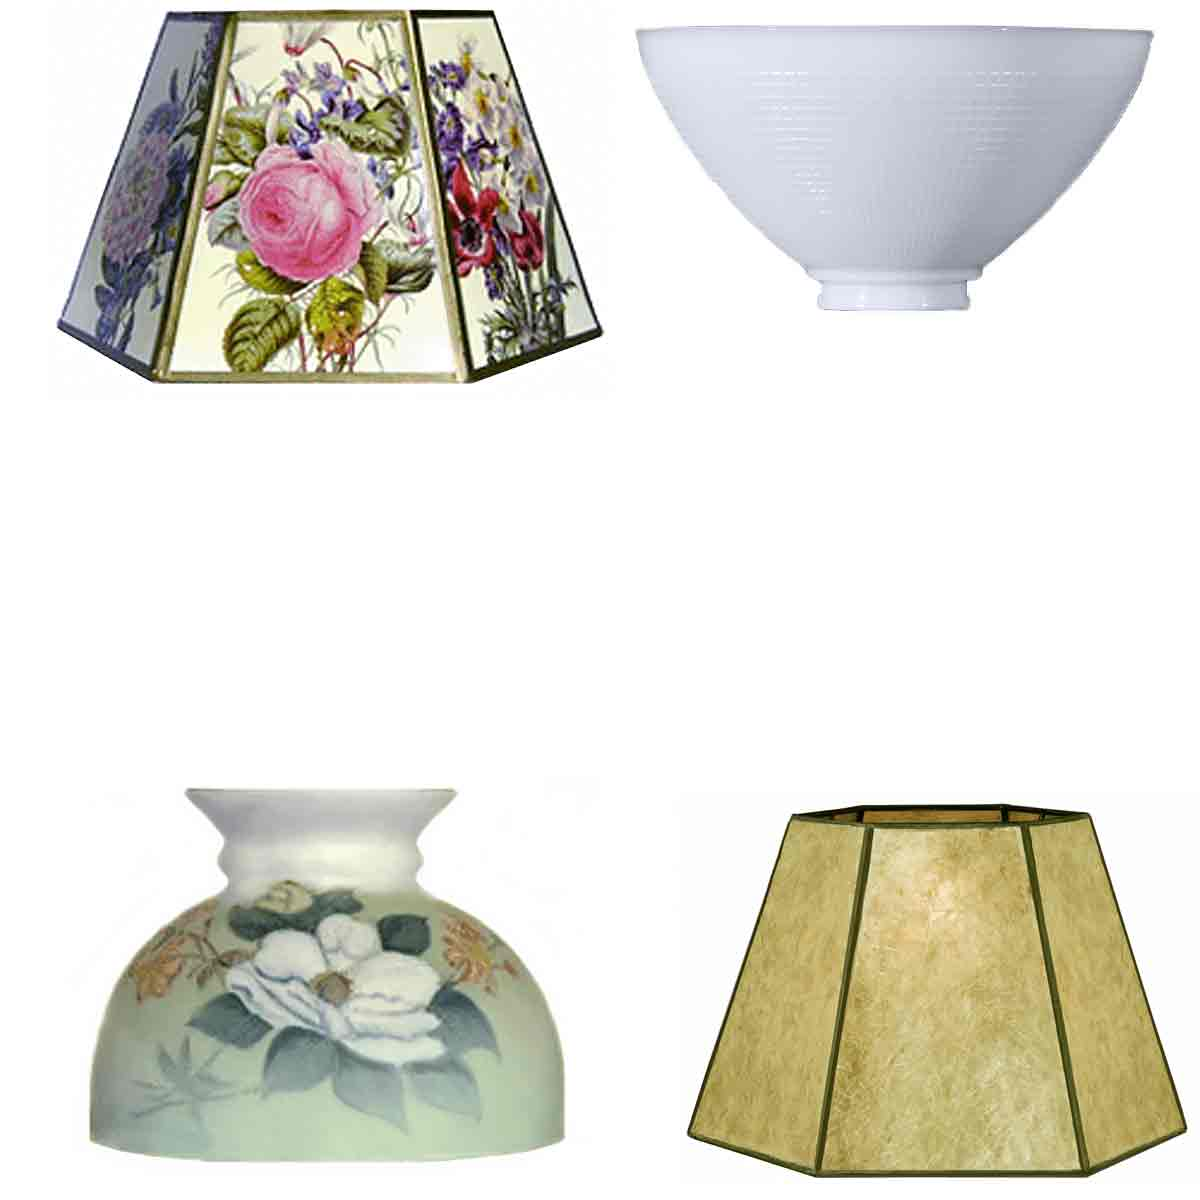 Replacement Lamp Shades for table and floor lamps